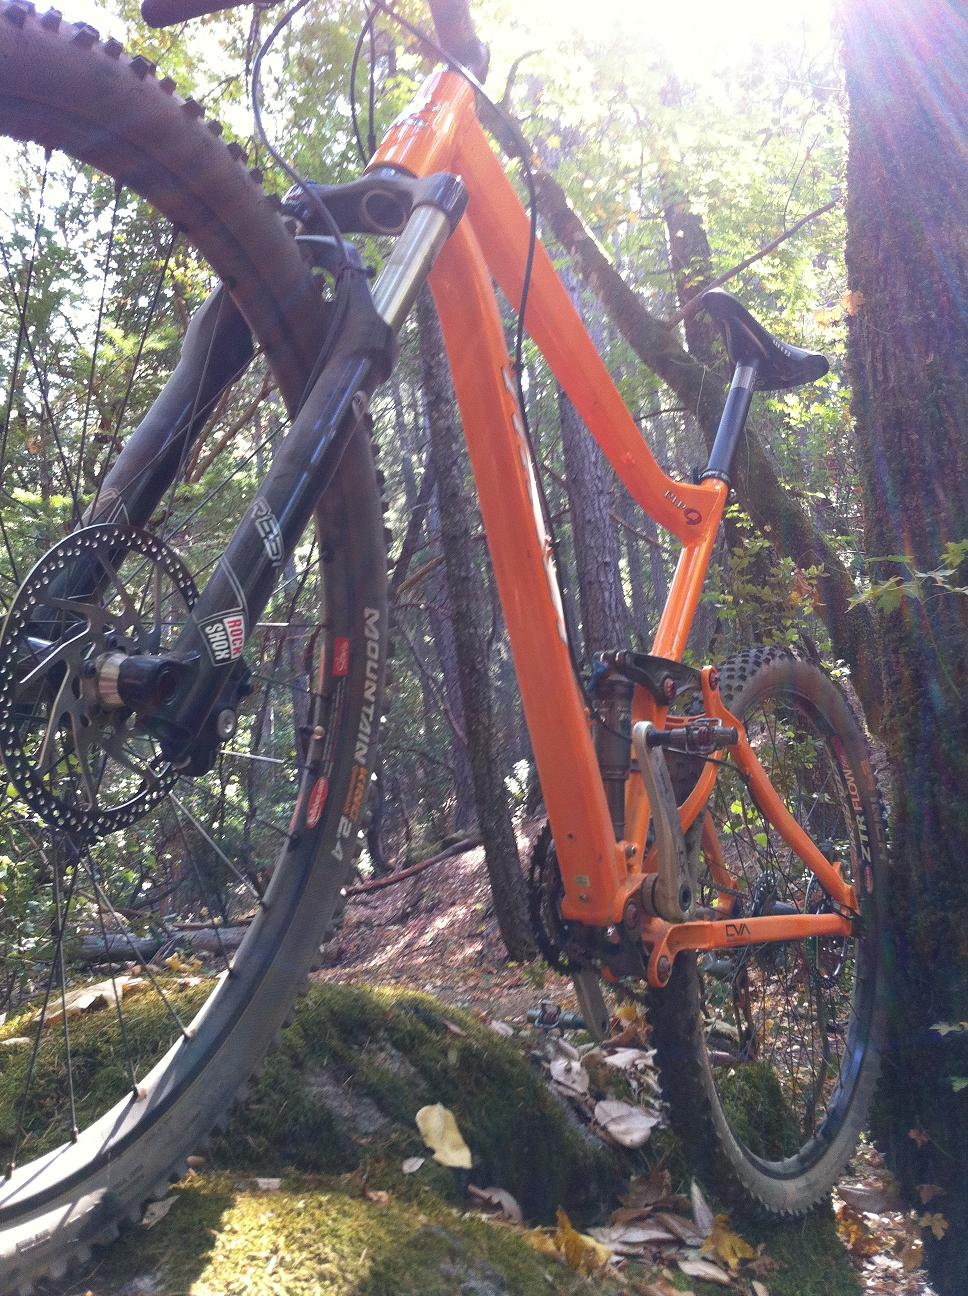 Can We Start a New Post Pictures of your 29er Thread?-007.jpg